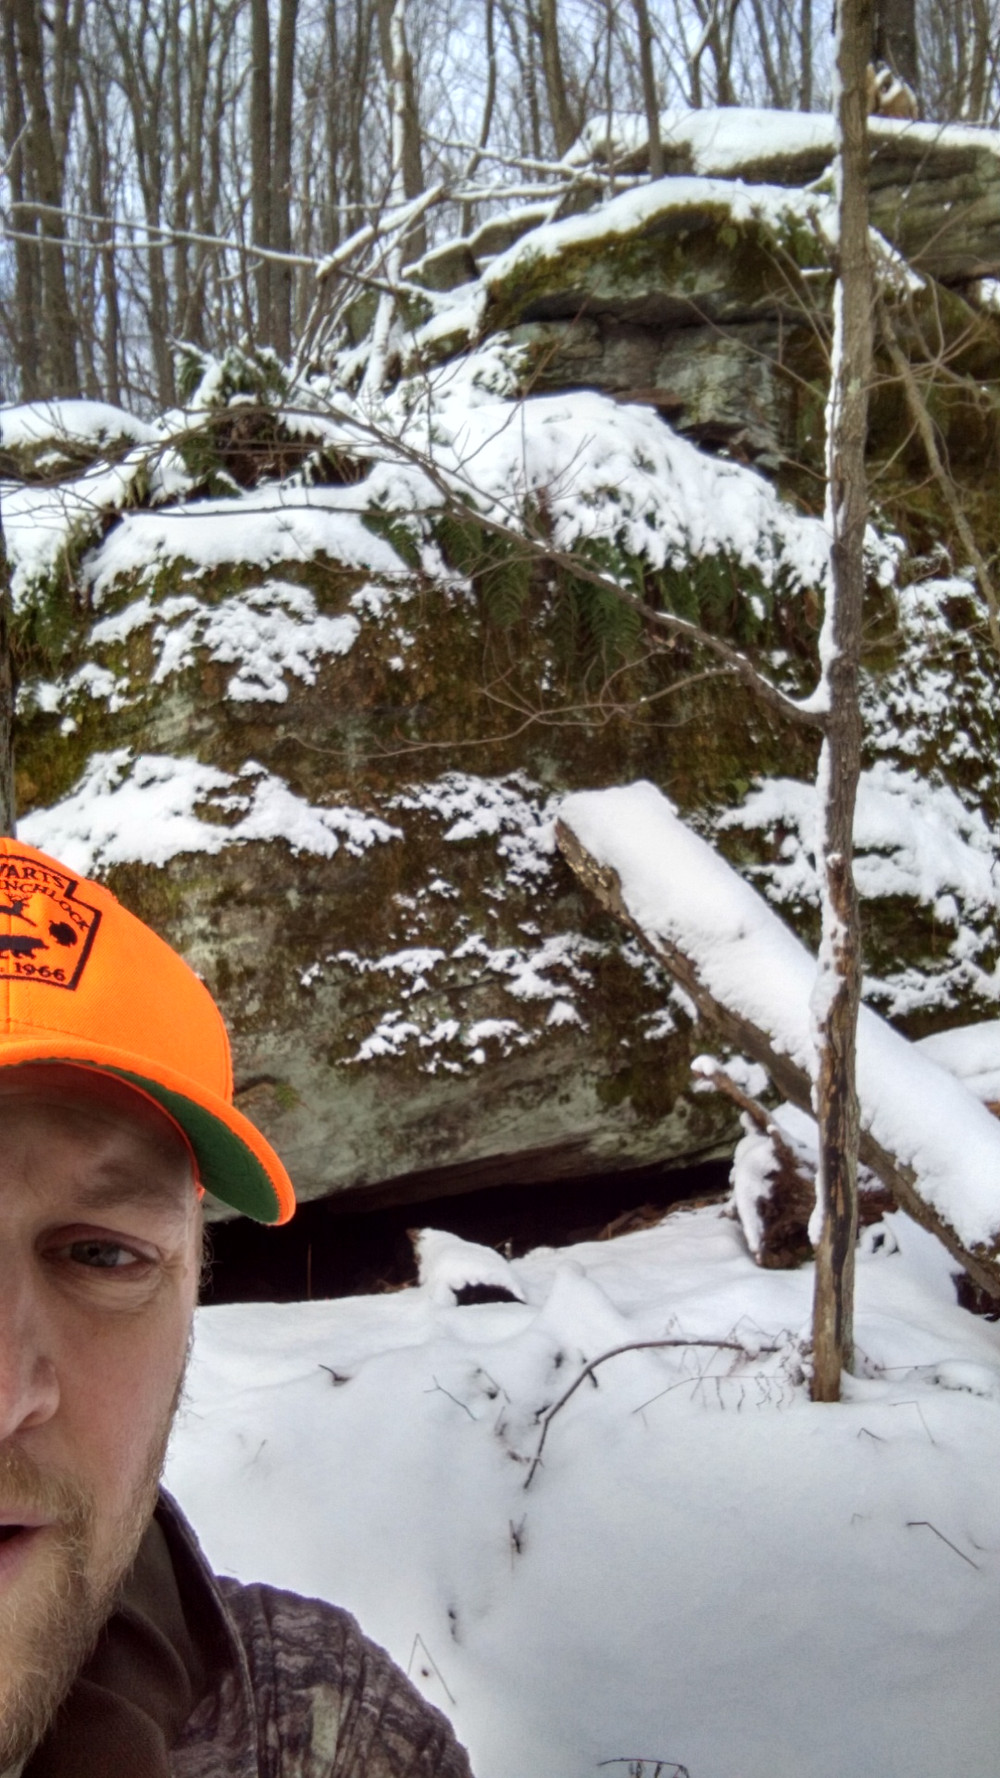 Finding new areas to hunt can bring the love of hunting back